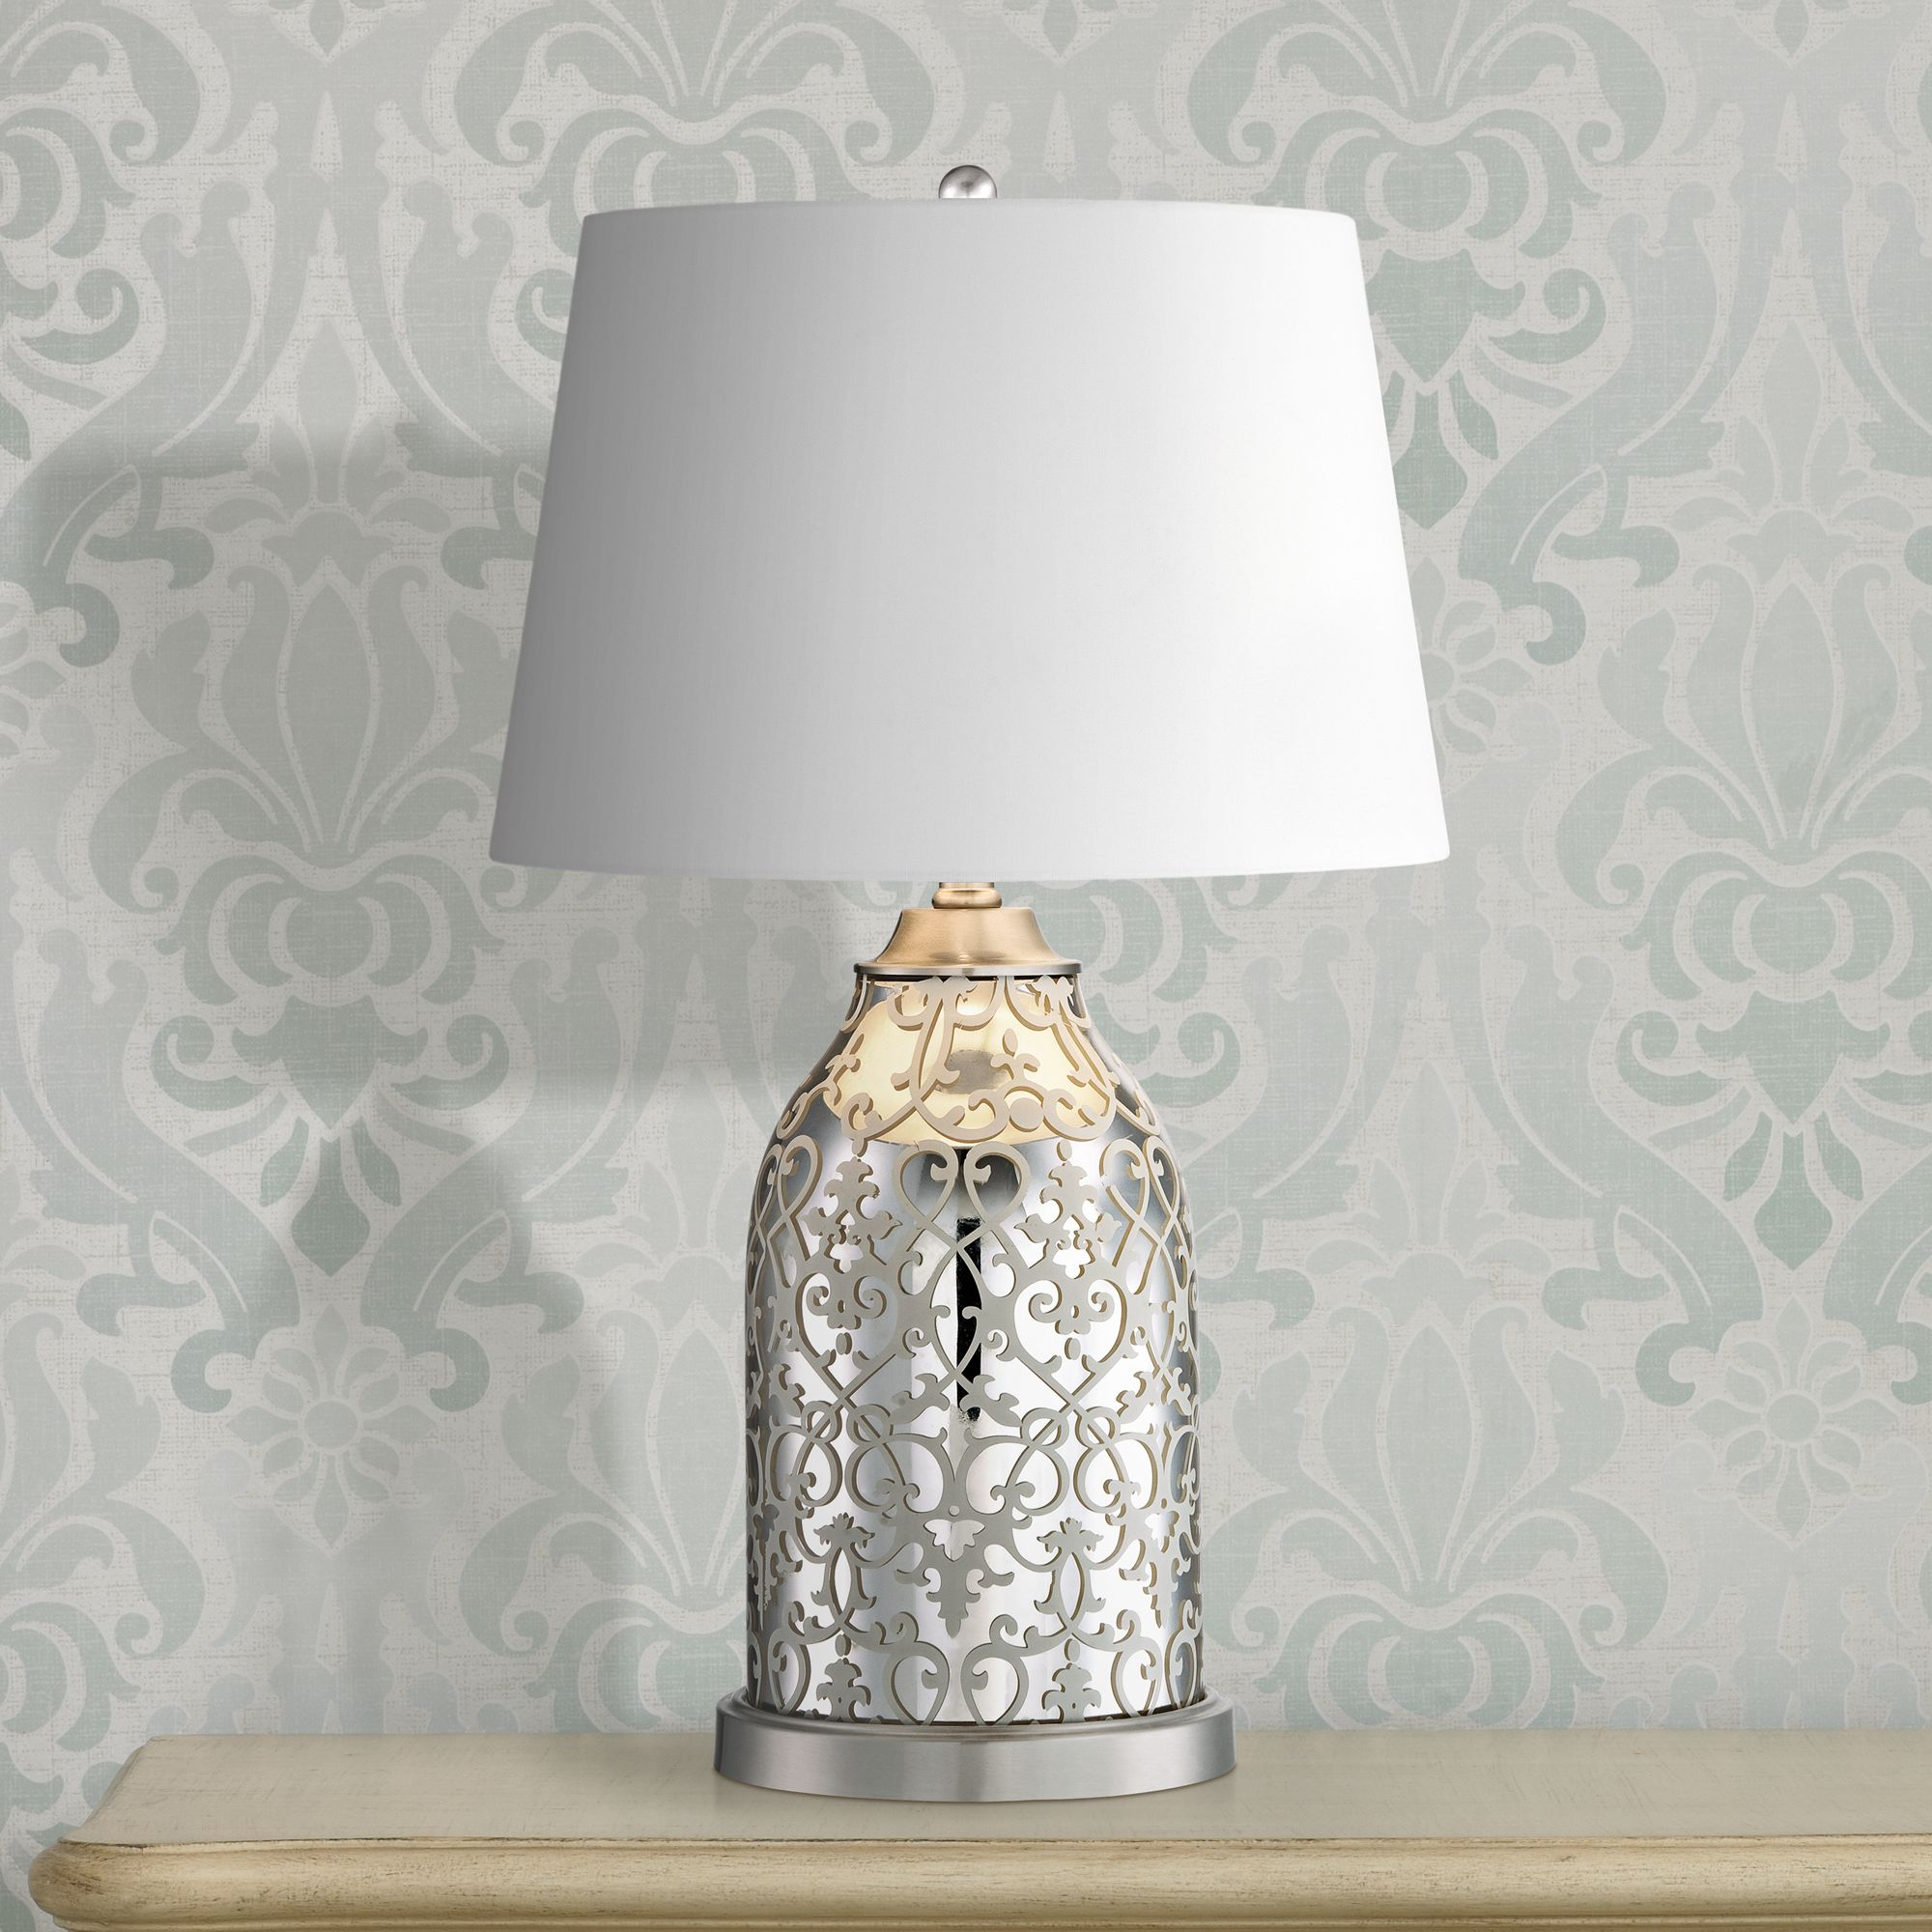 zoey pattern mercury glass table lamp - Mercury Glass Table Lamp